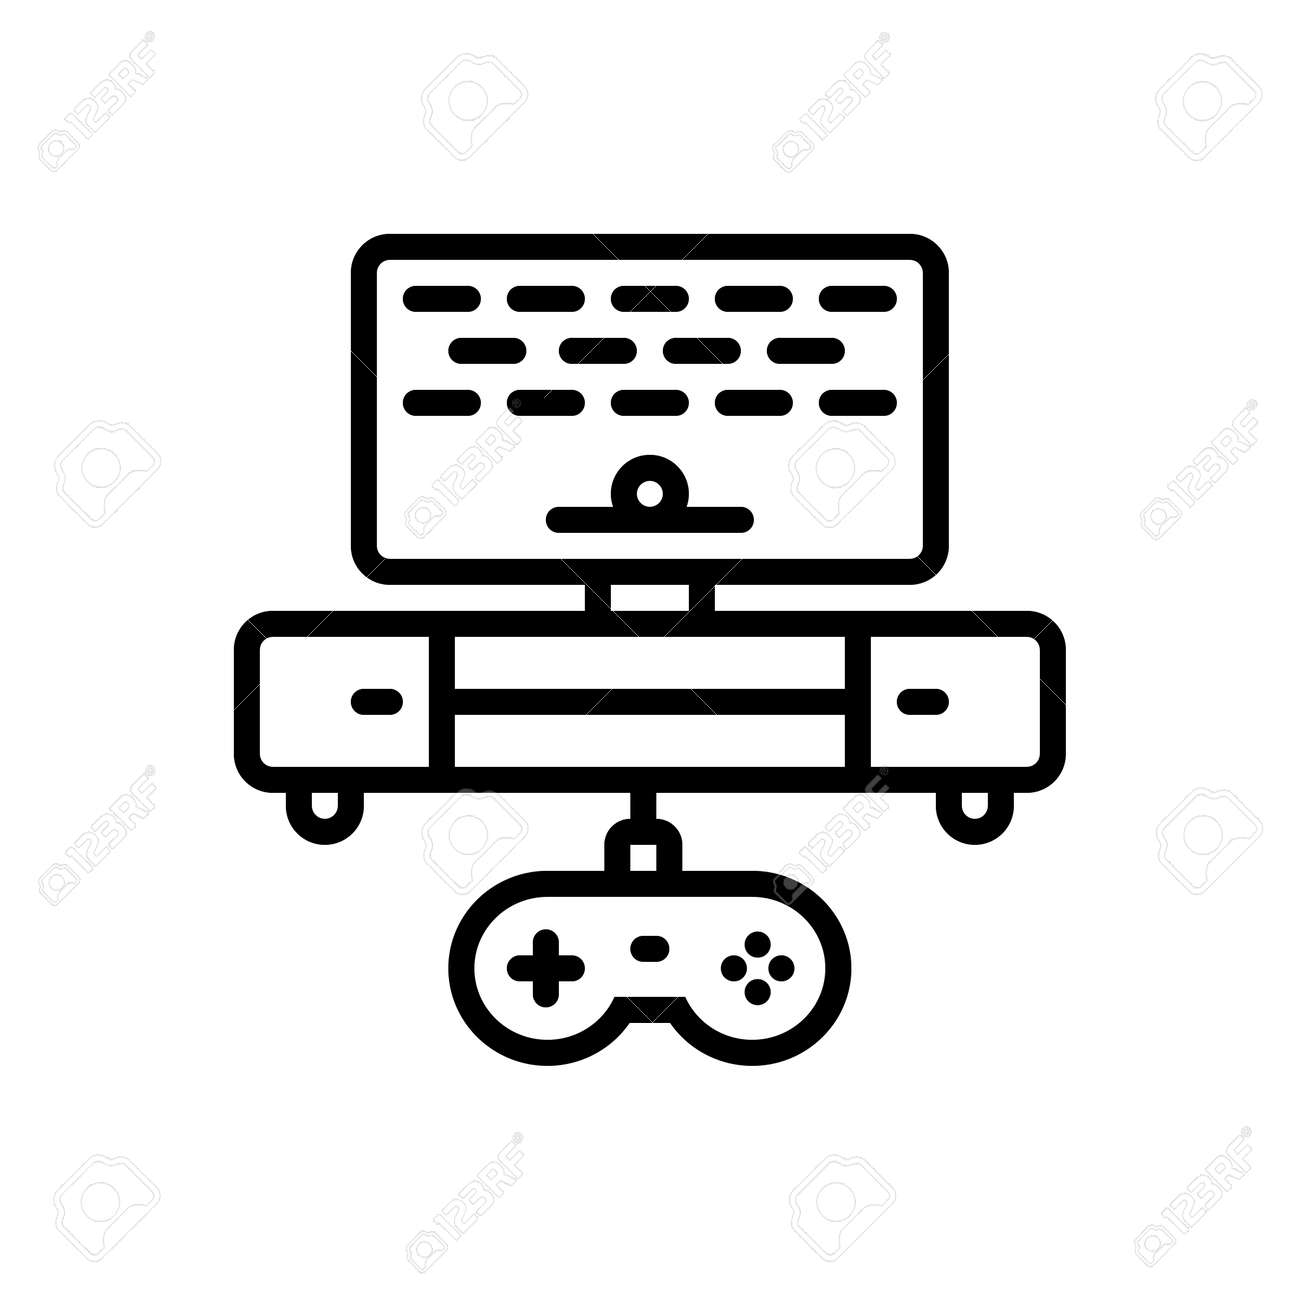 Icon for game,control - 172206693